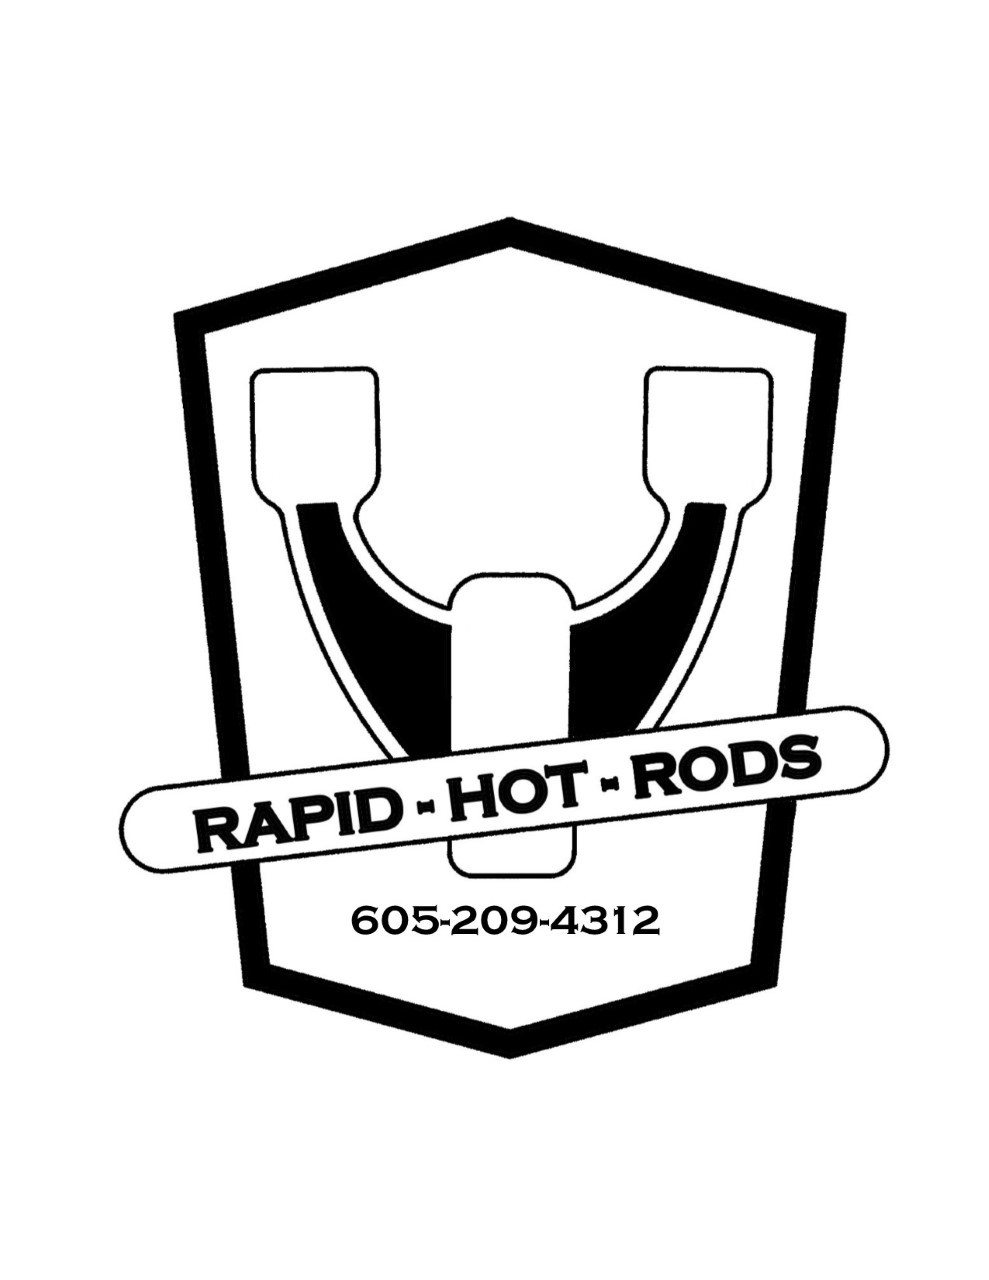 Rapid Hot Rods